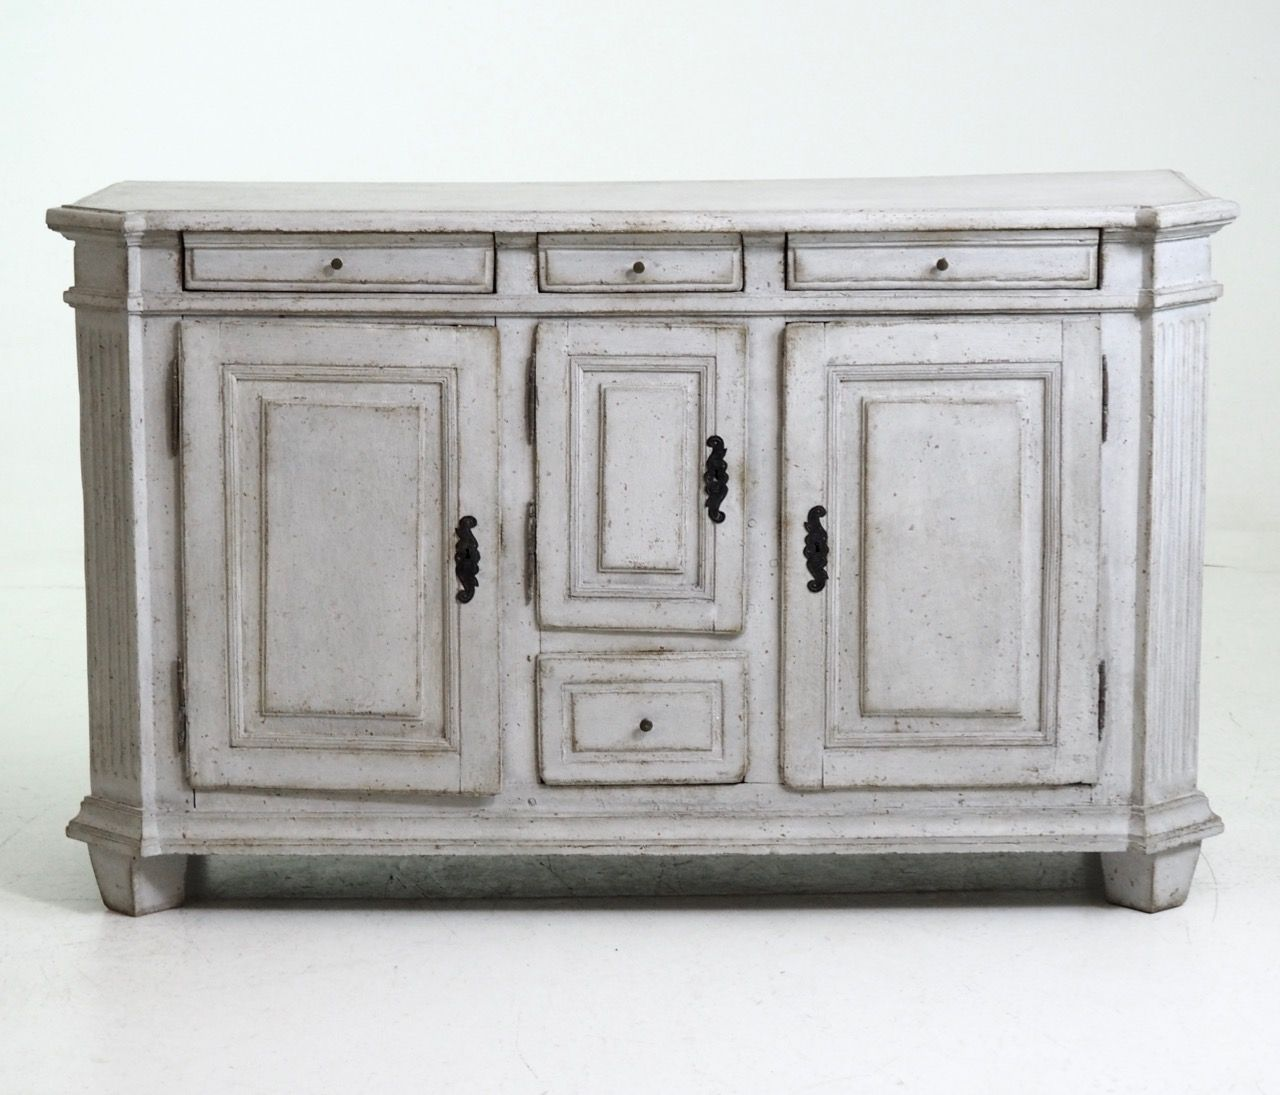 Antique Scandinavian Sideboard - Antique Scandinavian Sideboard For Sale At Pamono